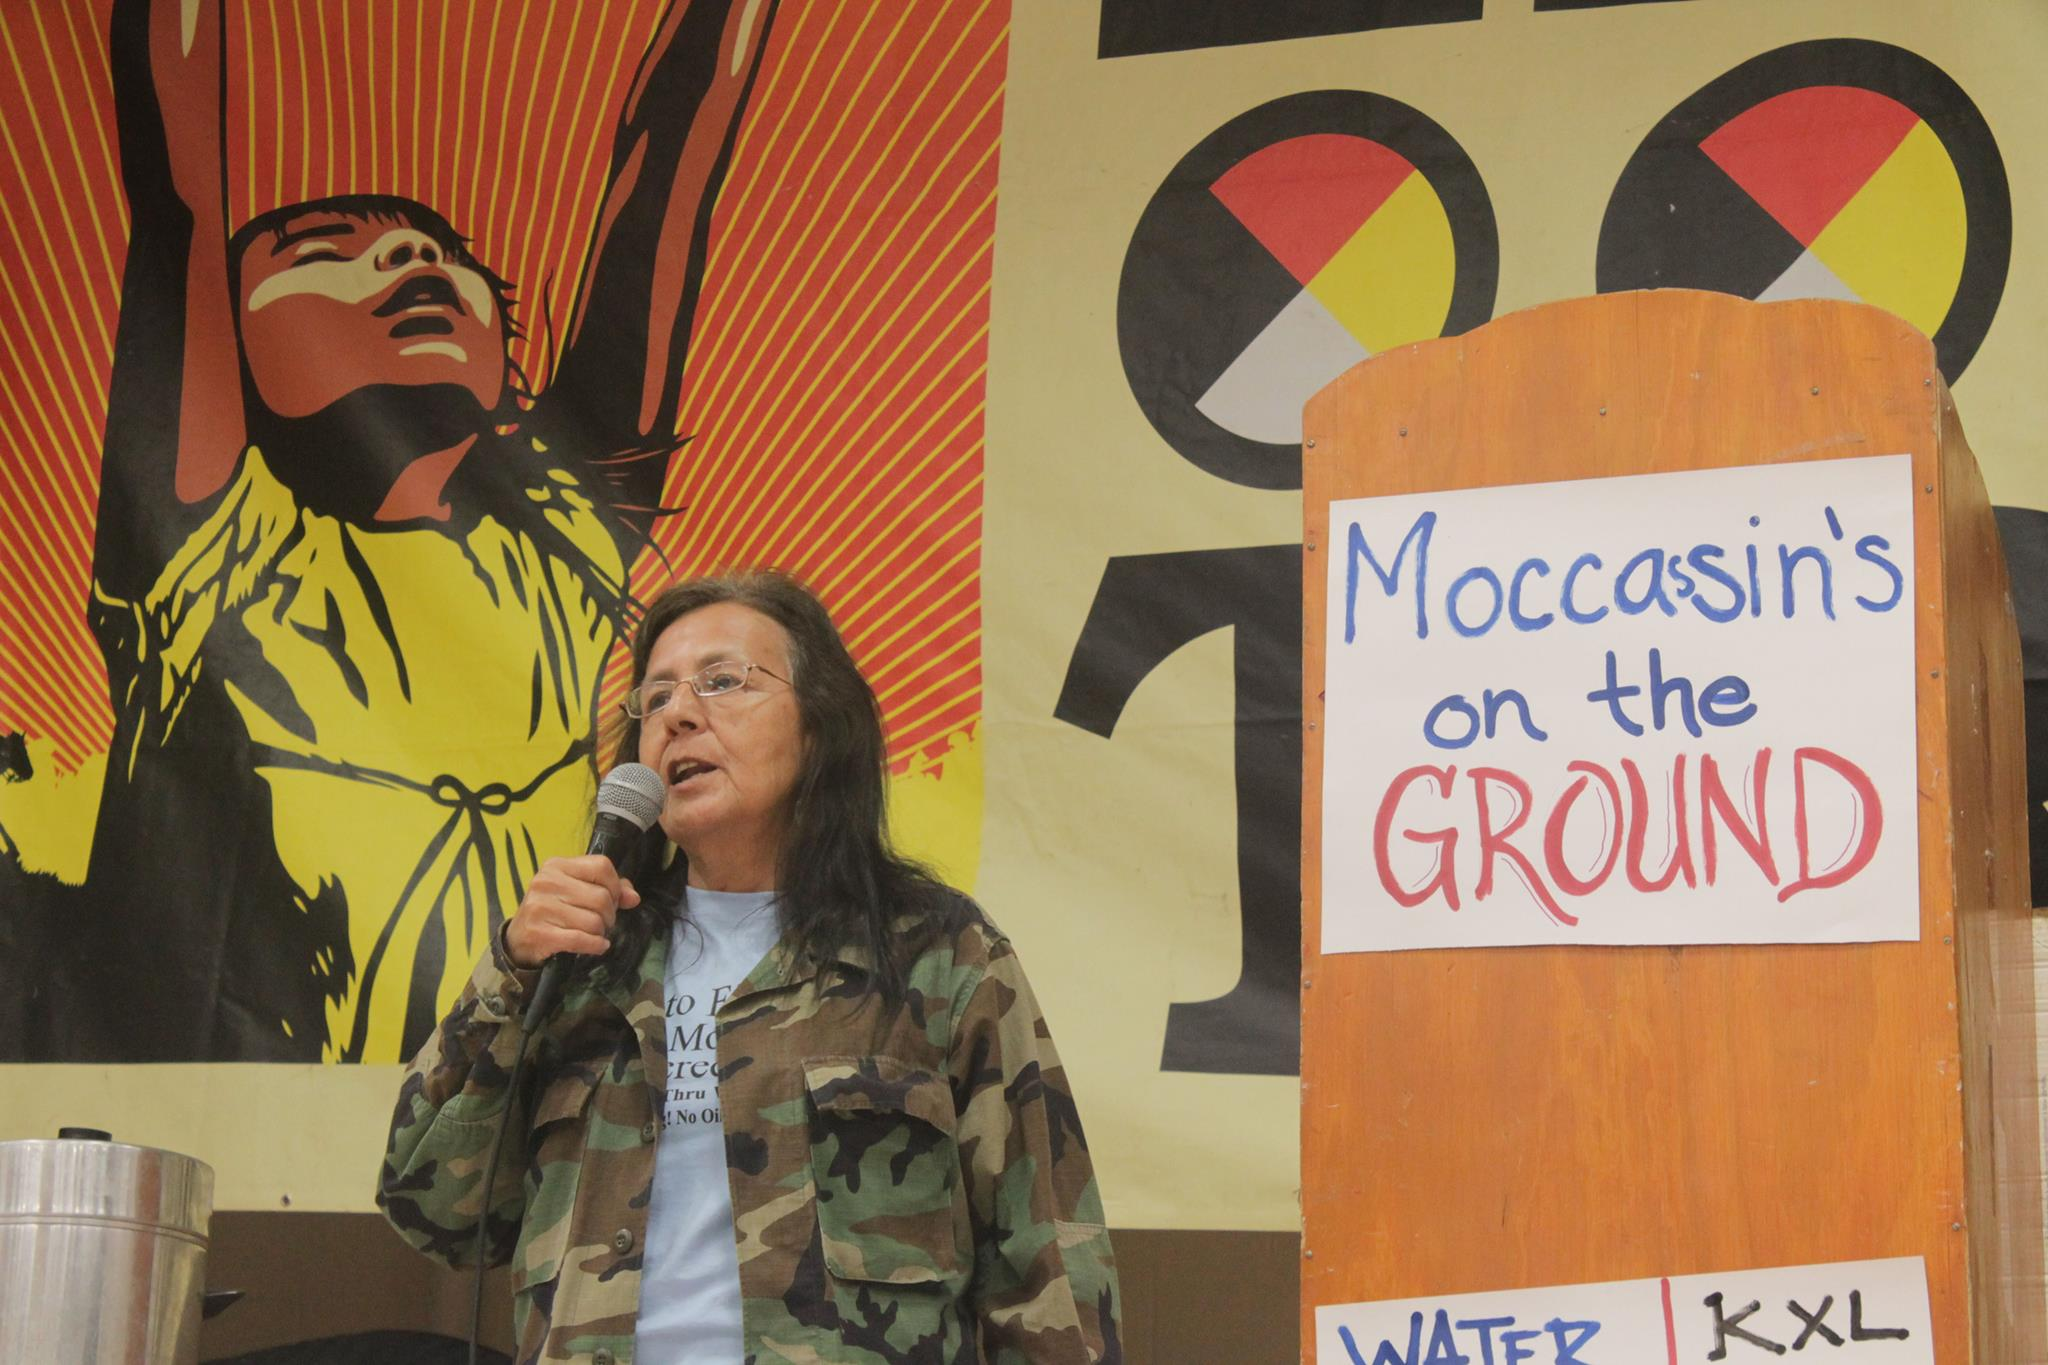 Native Sun News: 'Moccasins on the Ground' against Keystone